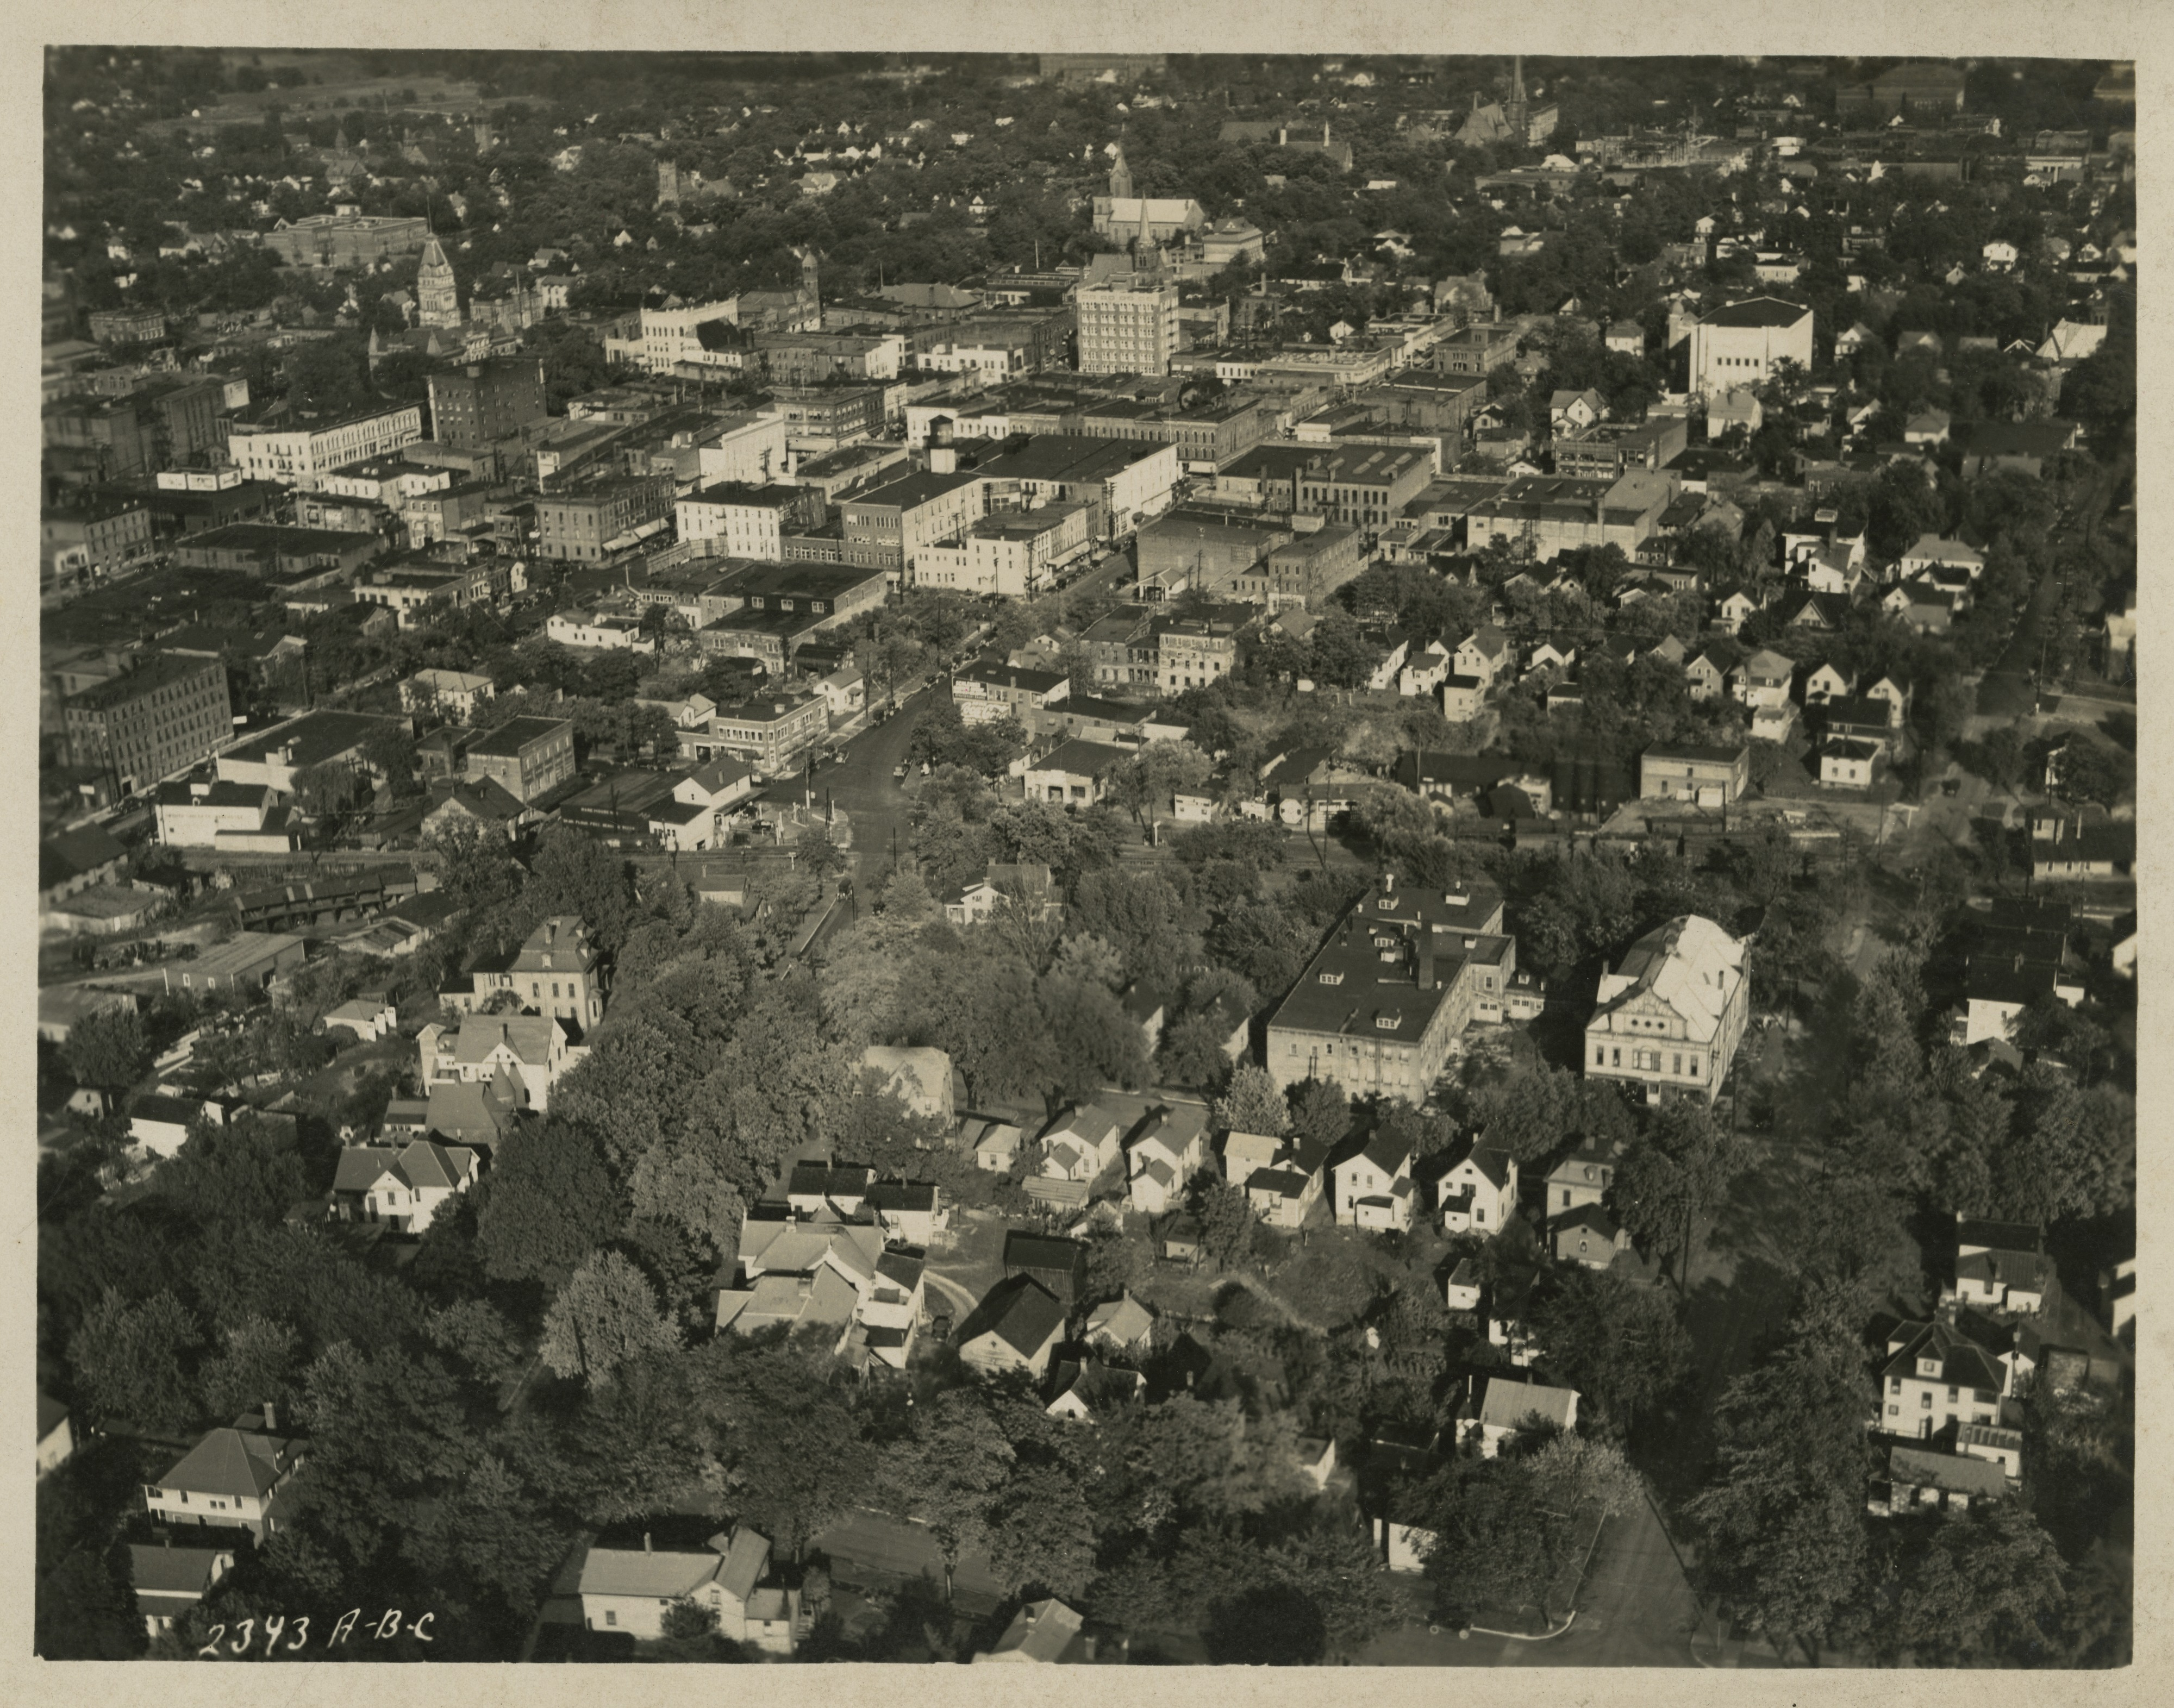 Aerial view of Ann Arbor, undated image